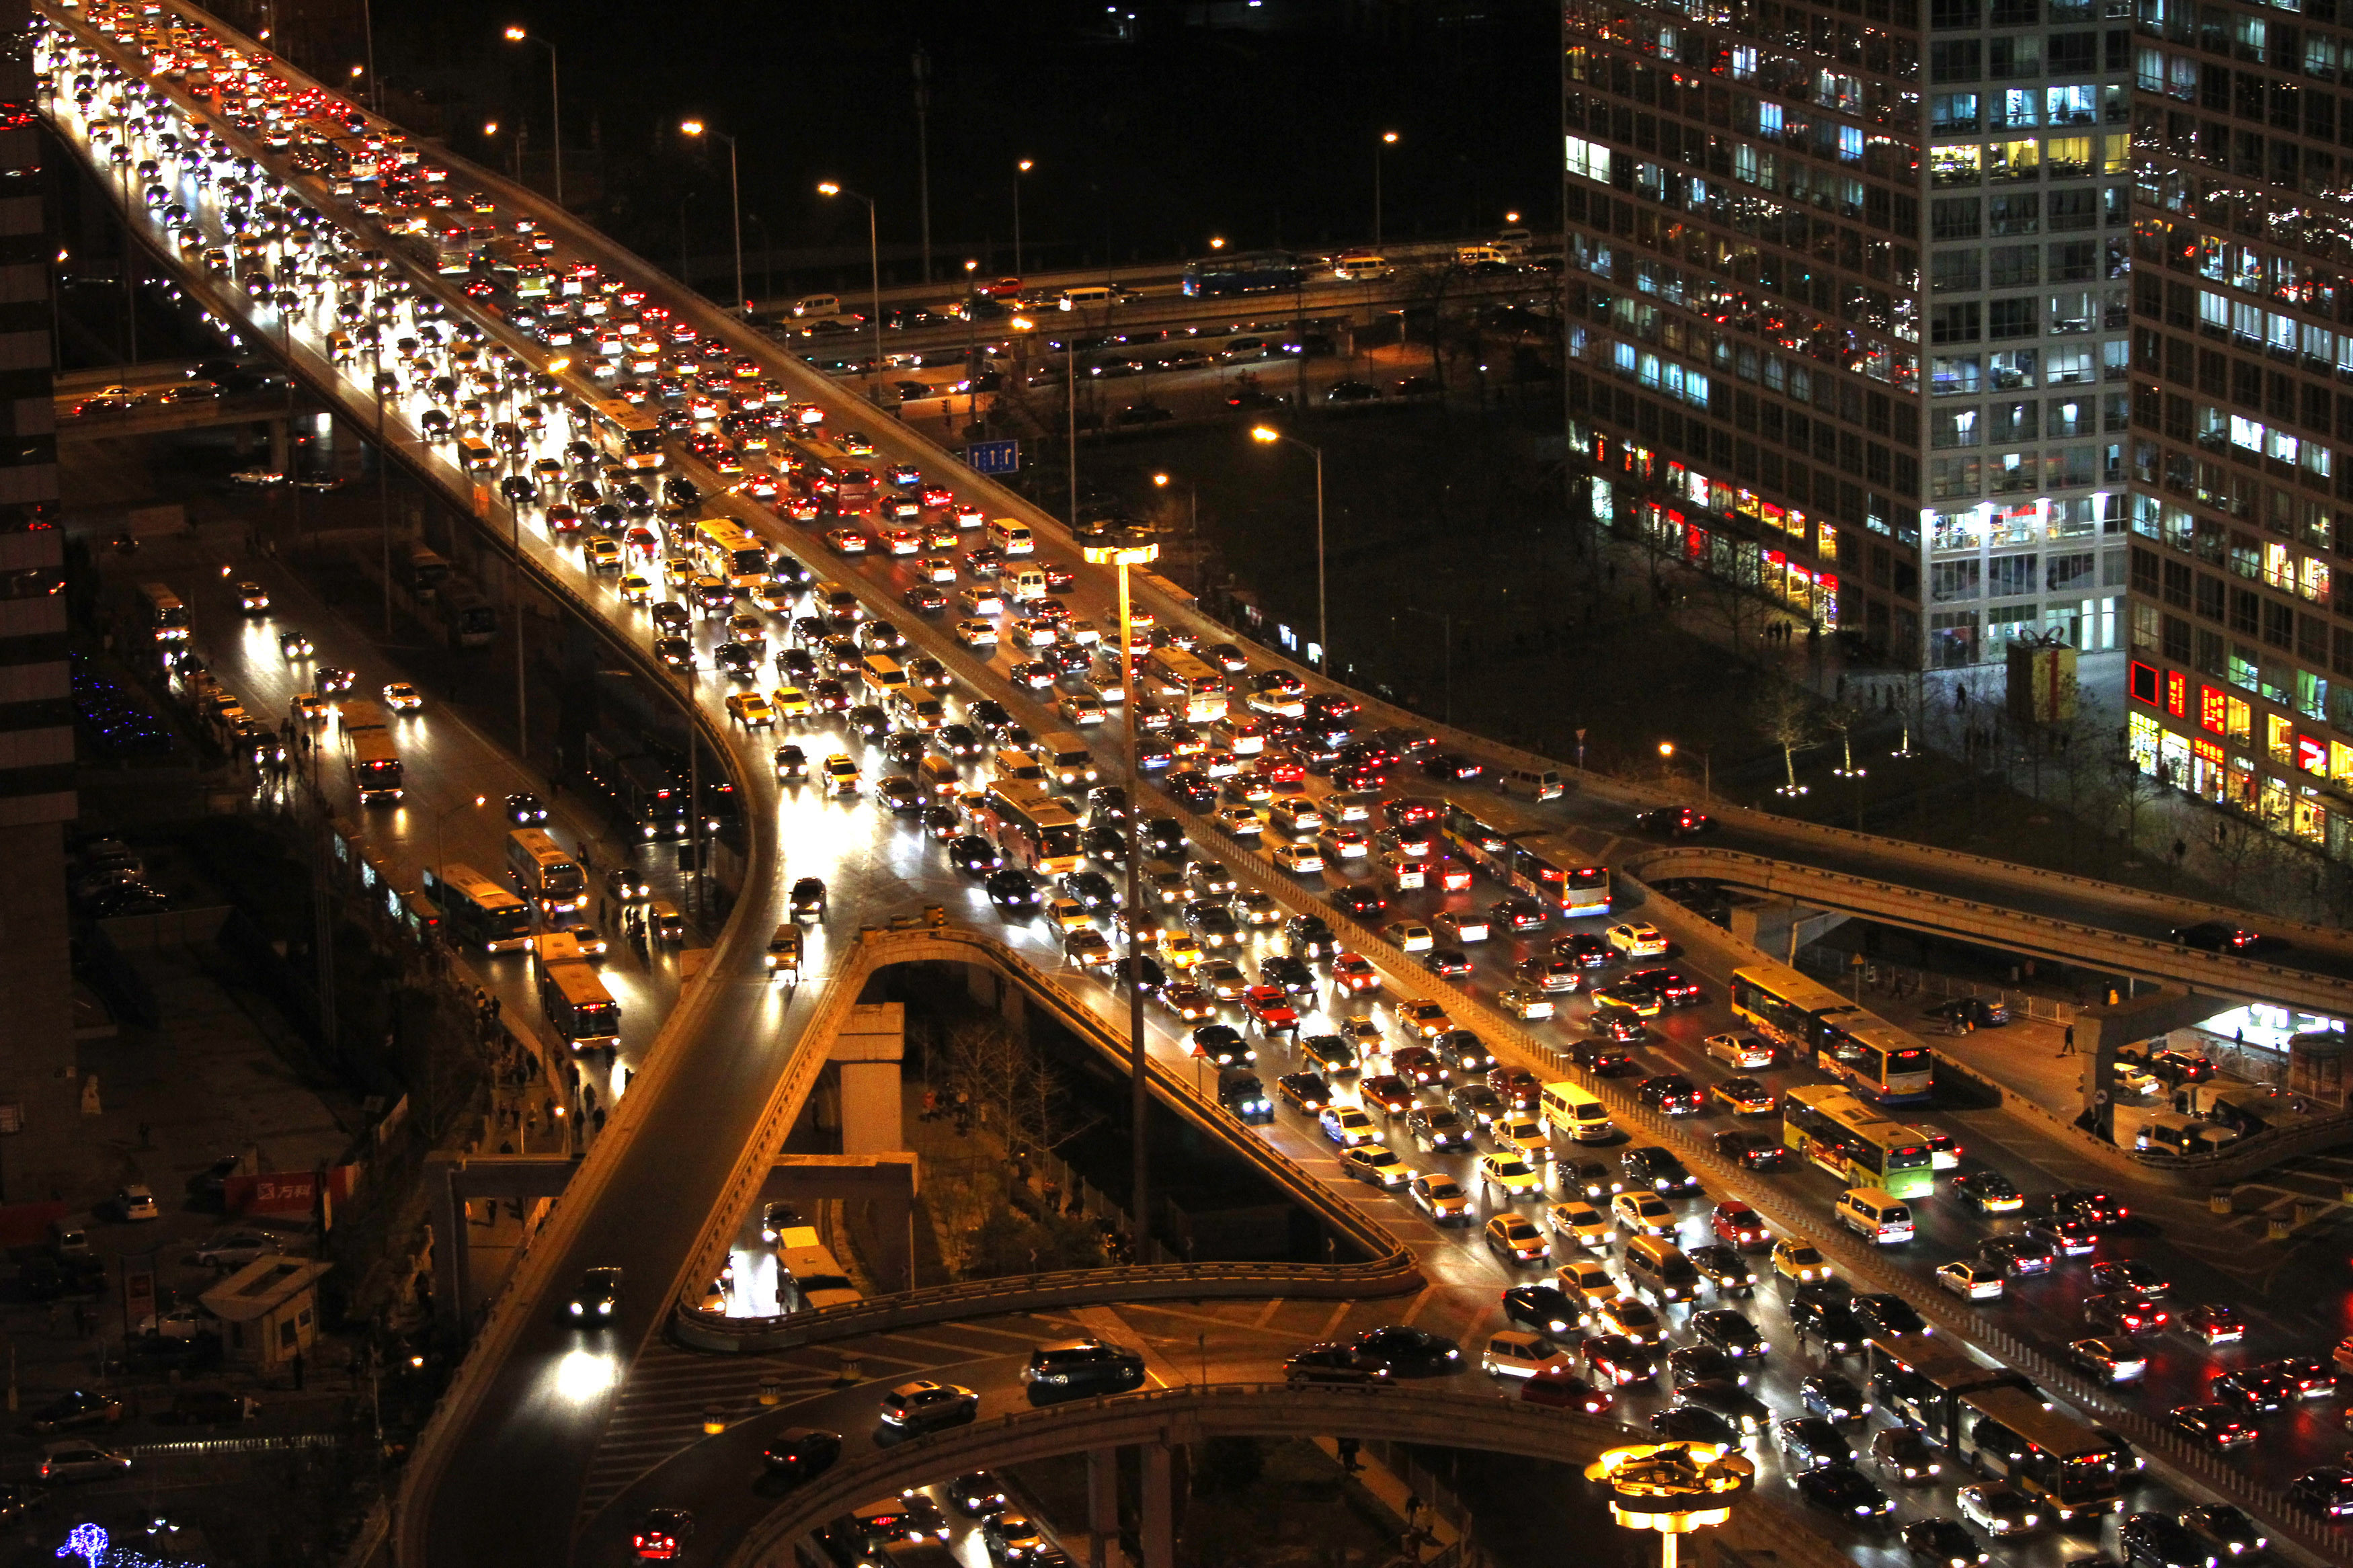 Vehicles drive on Three Ring Road during the evening rush hour in central Beijing, December 23, 2010. Beijing will limit issuance of new car plates to 240,000 annually from January 1, 2011, in an effort to ease the capital city's traffic jams, Xinhua News Agency reported. REUTERS/Jason Lee(CHINA - Tags: ENVIRONMENT TRANSPORT) - GM1E6CN1GX001